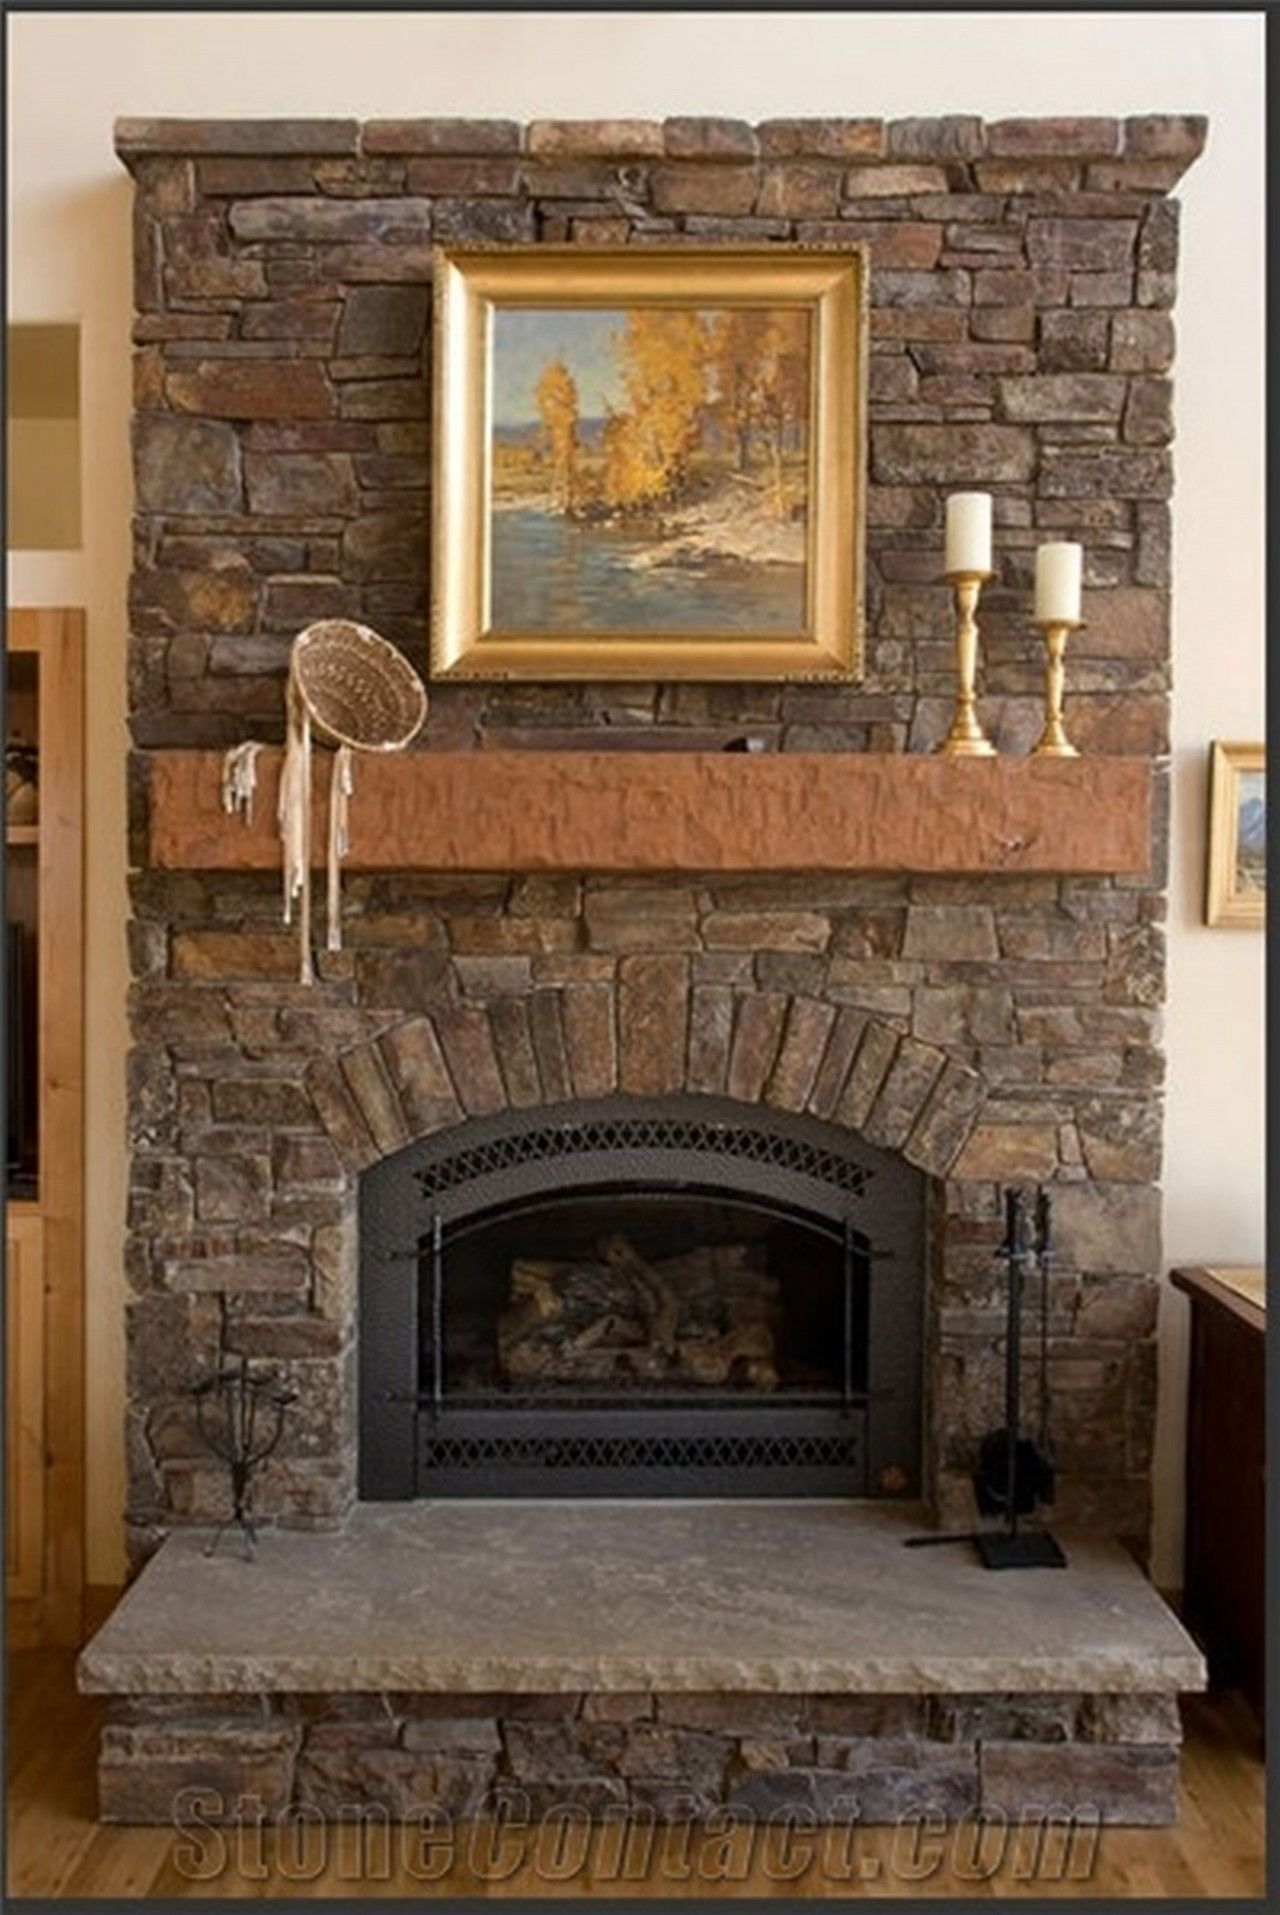 archaic paint stone fireplace architecture fair stone fireplace decorating ideas picturesque color mixture chief joseph - Stone Fireplace Design Ideas